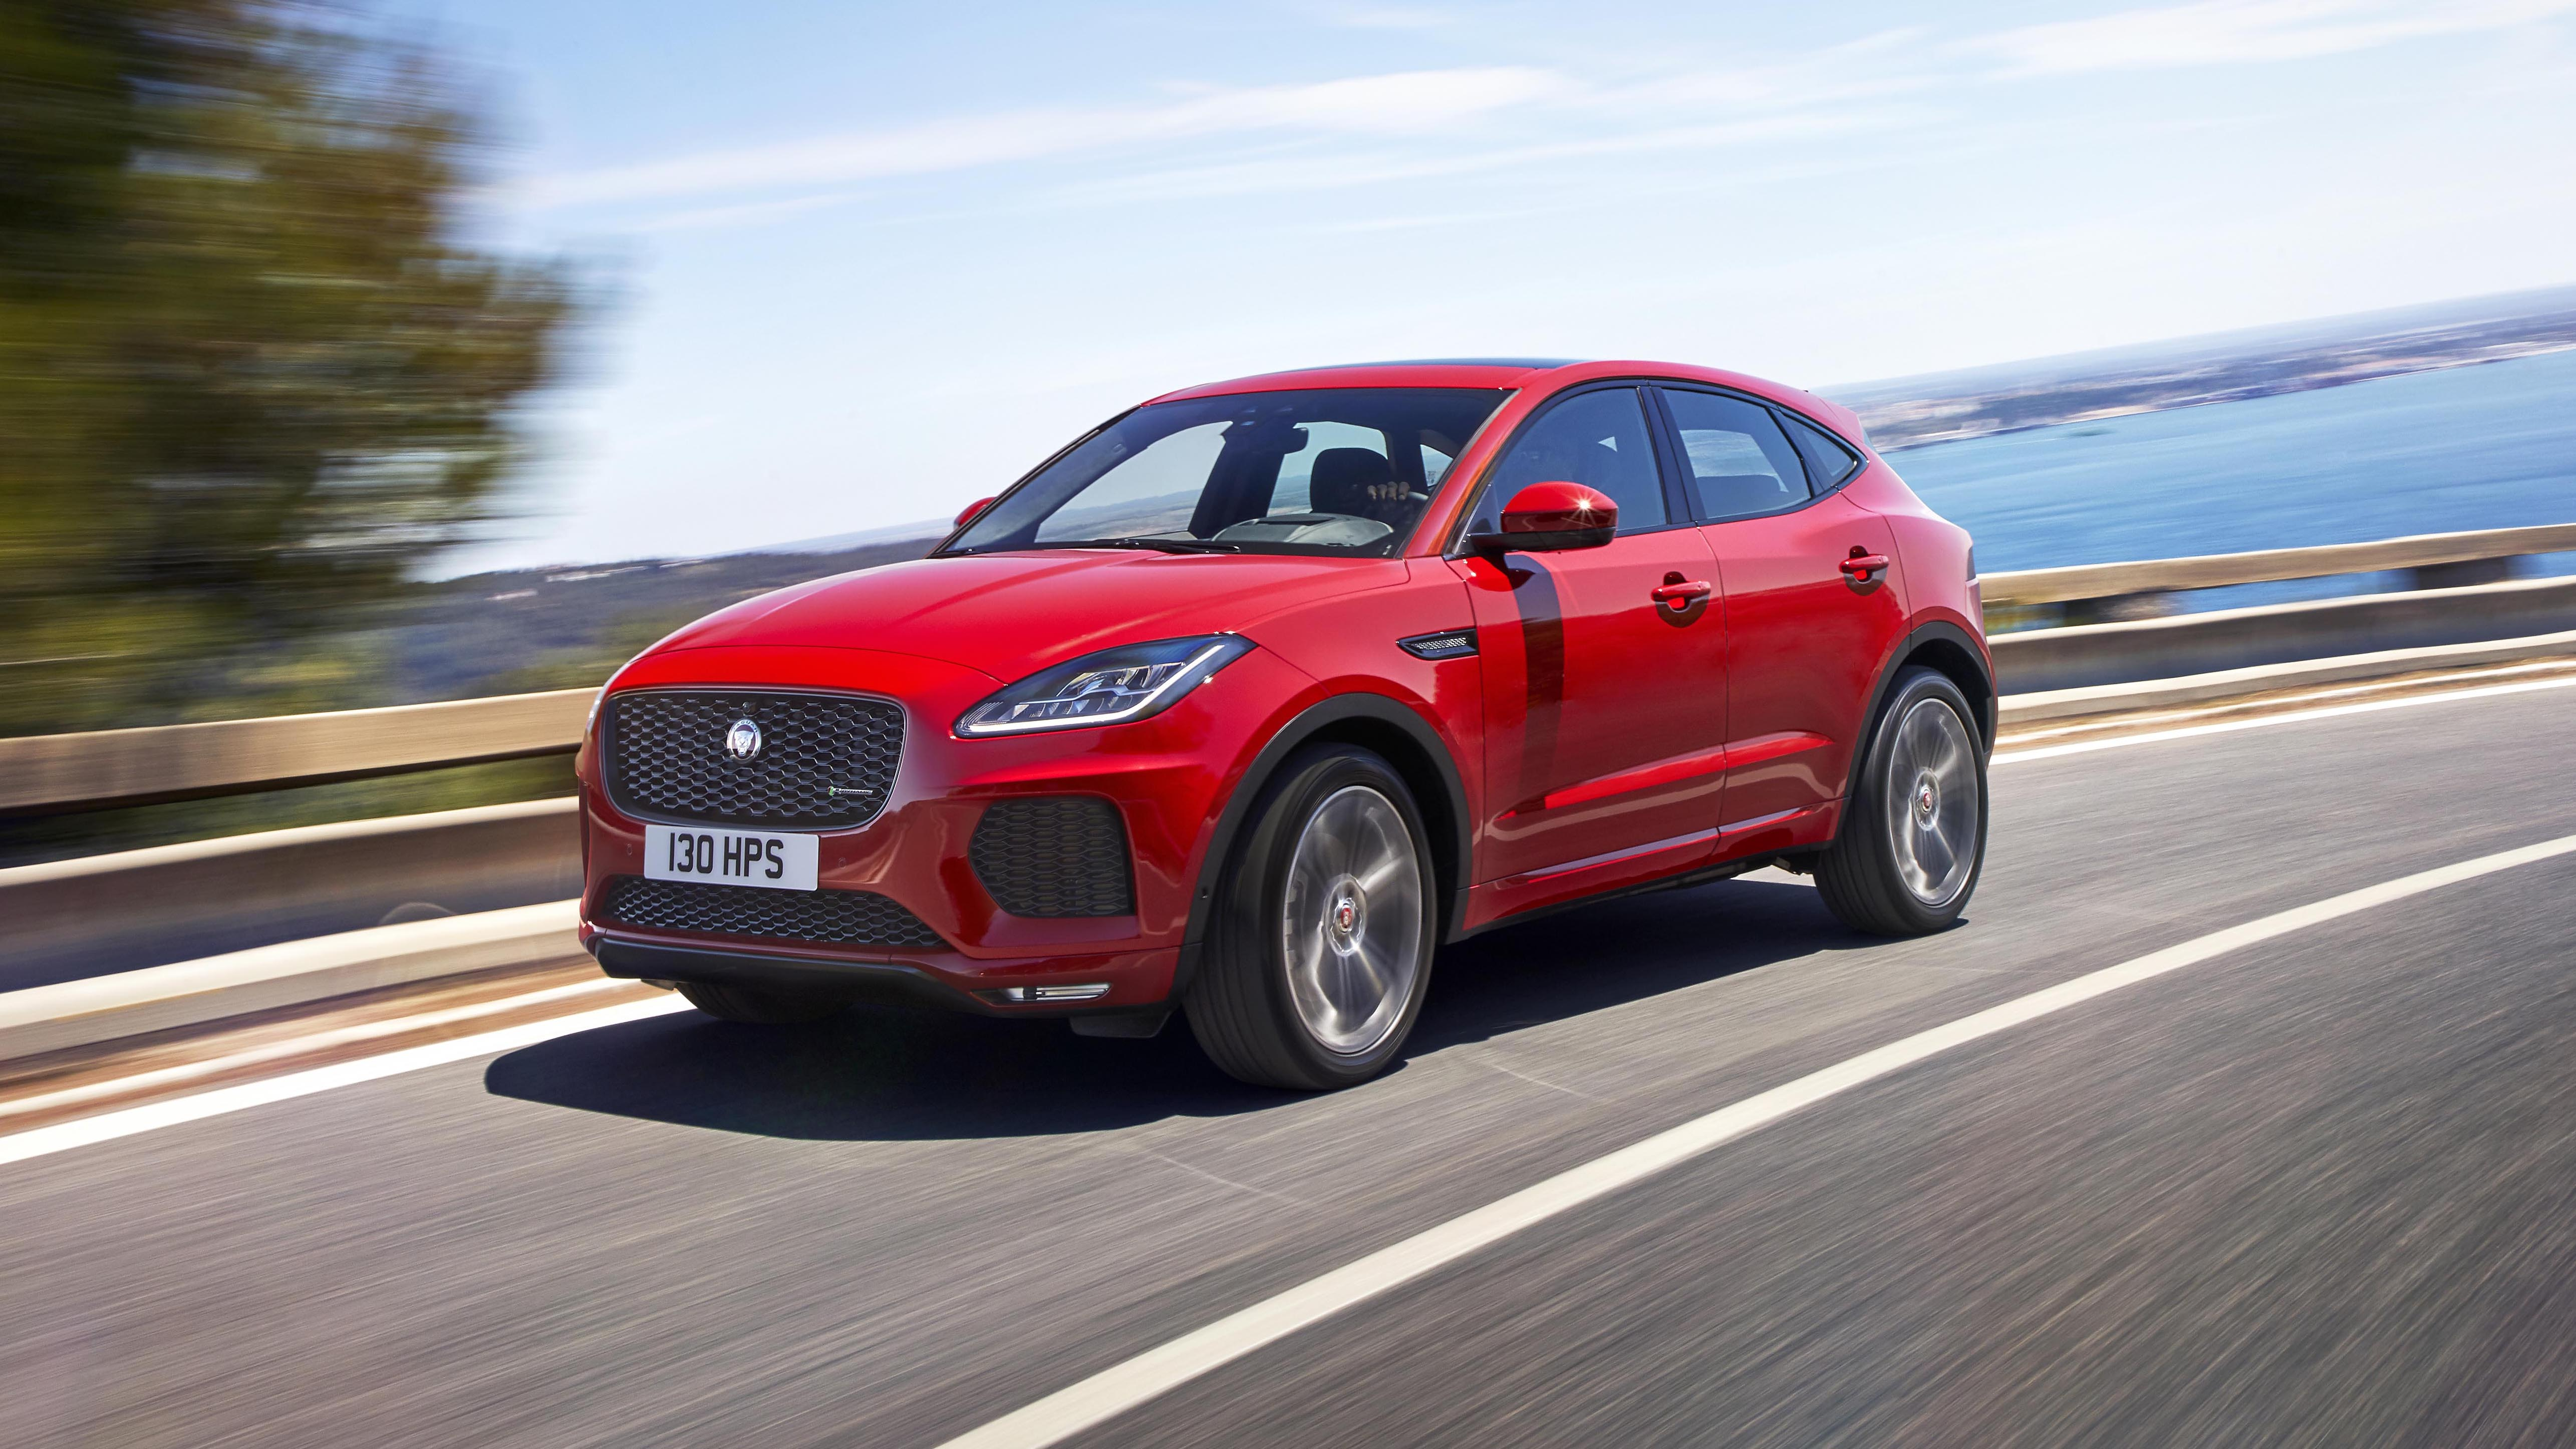 freshman all new suv book review jaguar class first pace blue latest kelley news the car f